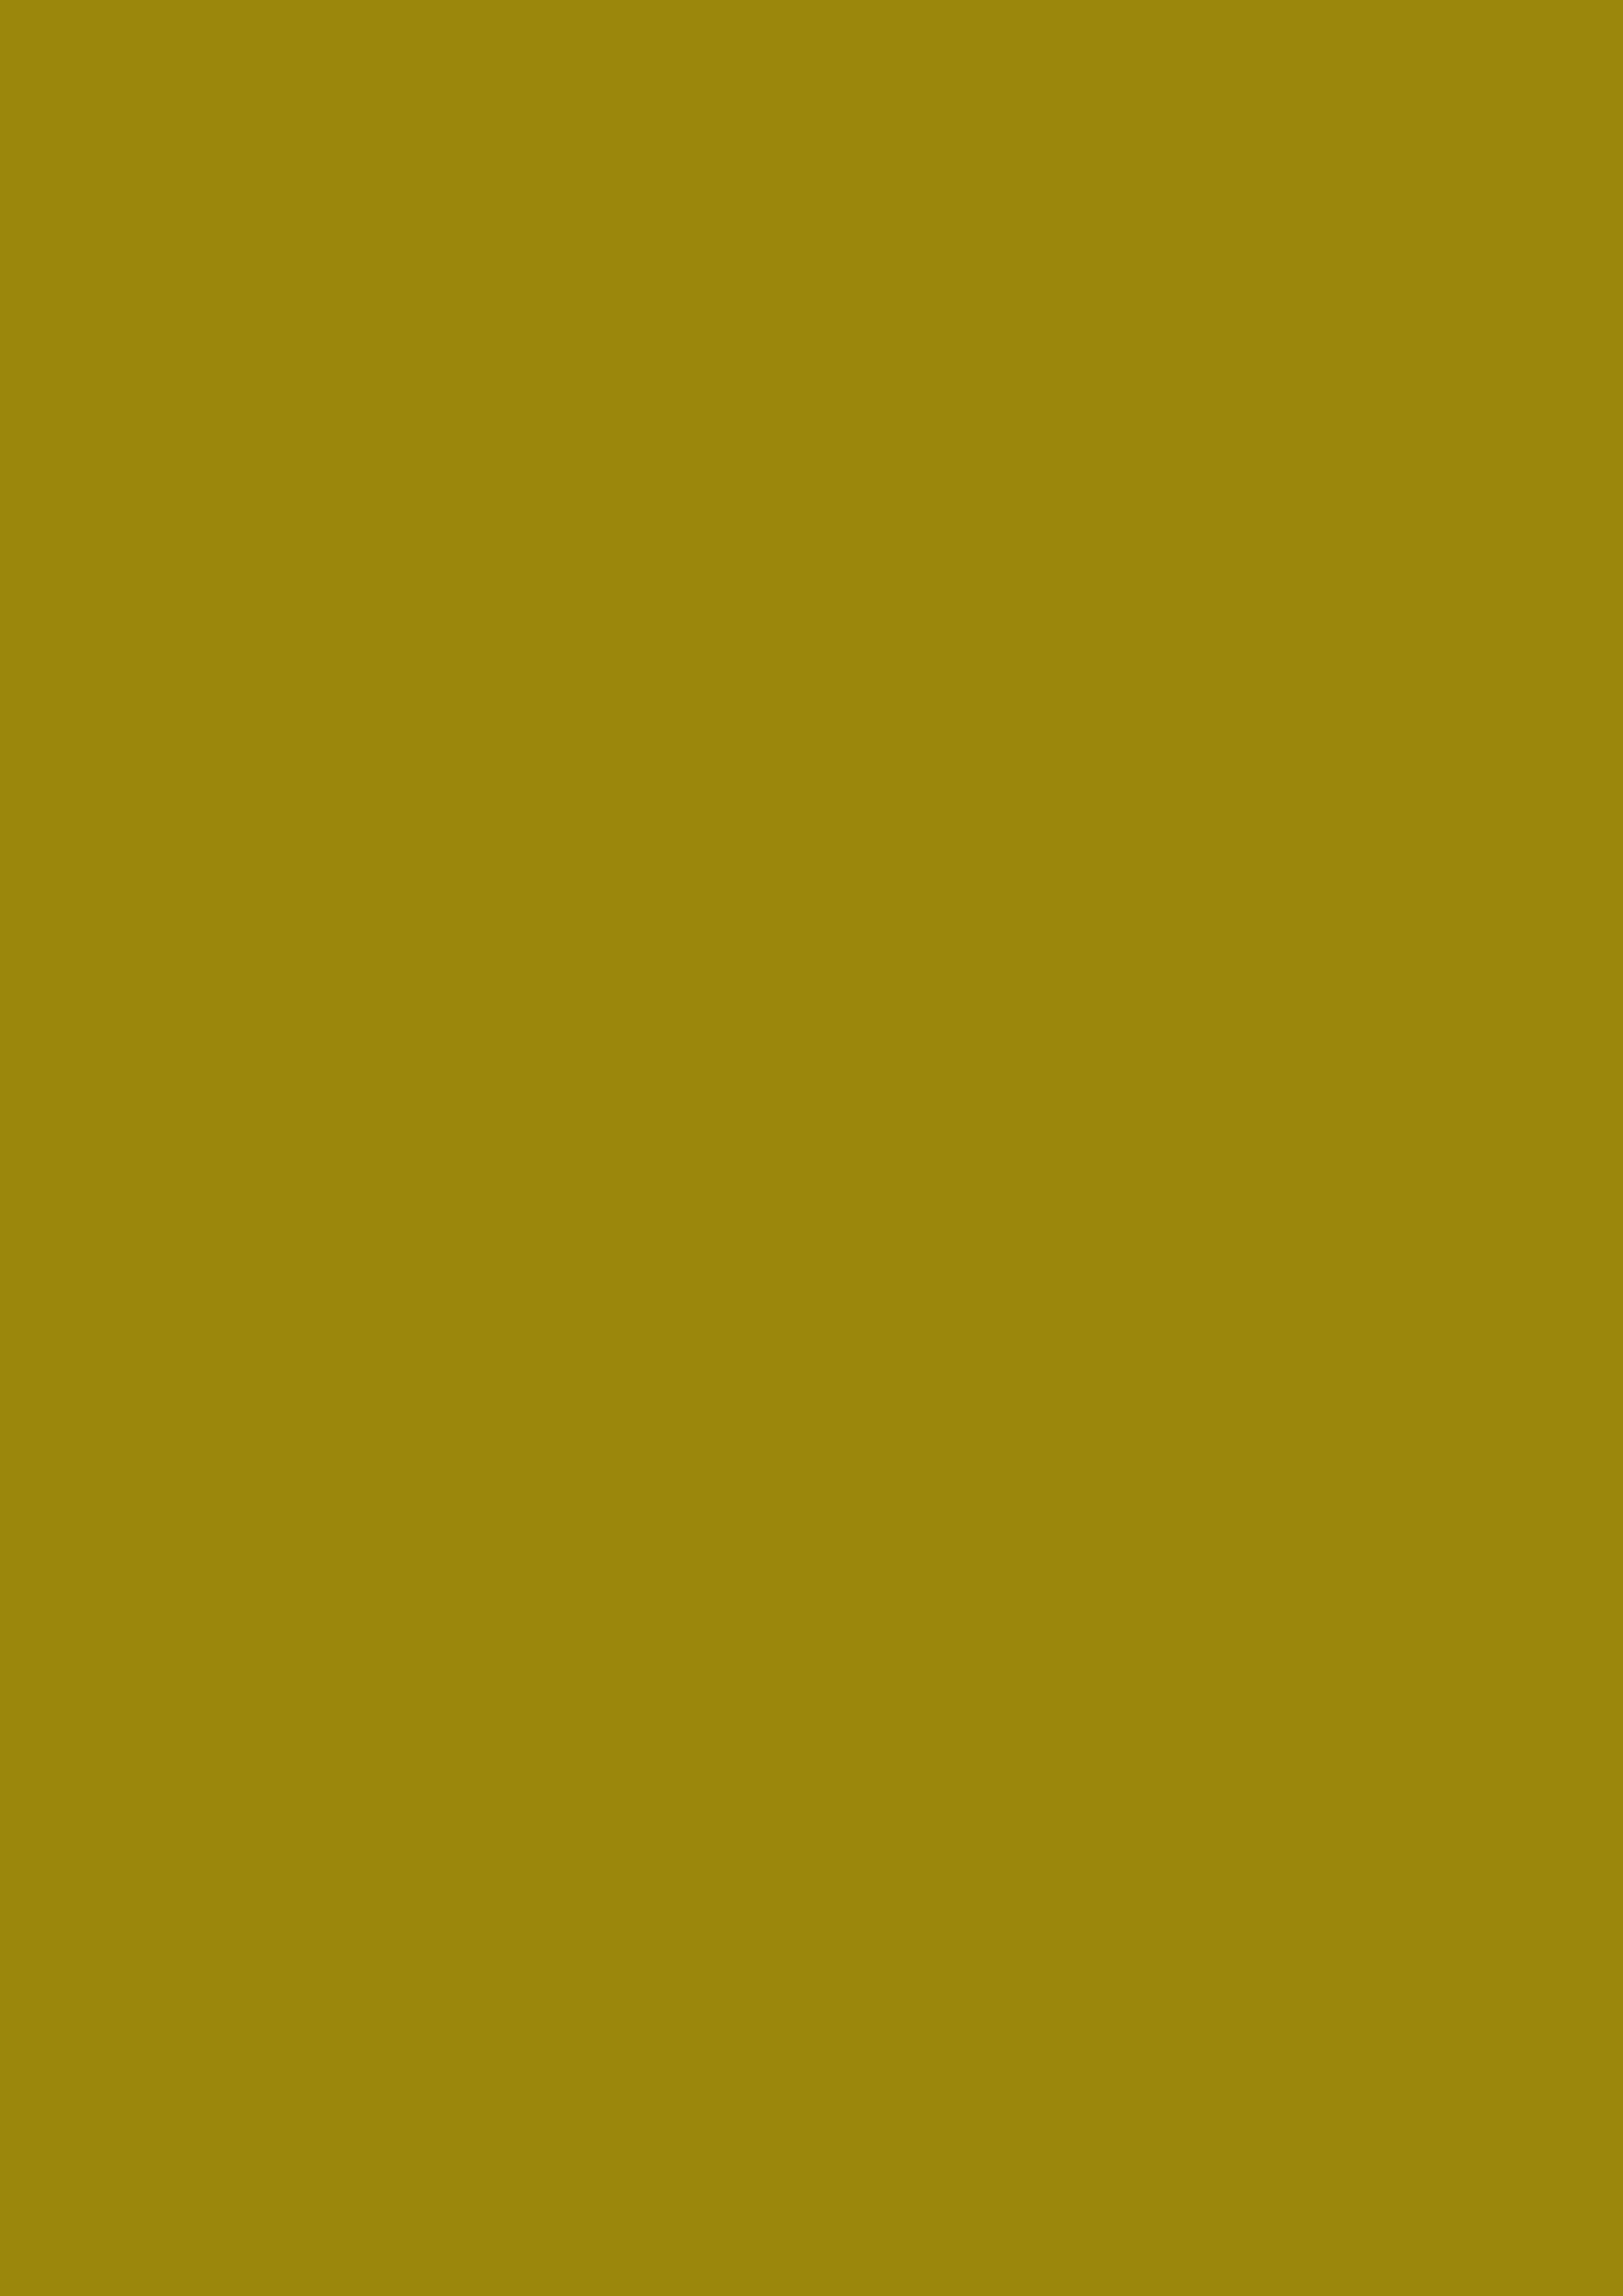 2480x3508 Dark Yellow Solid Color Background